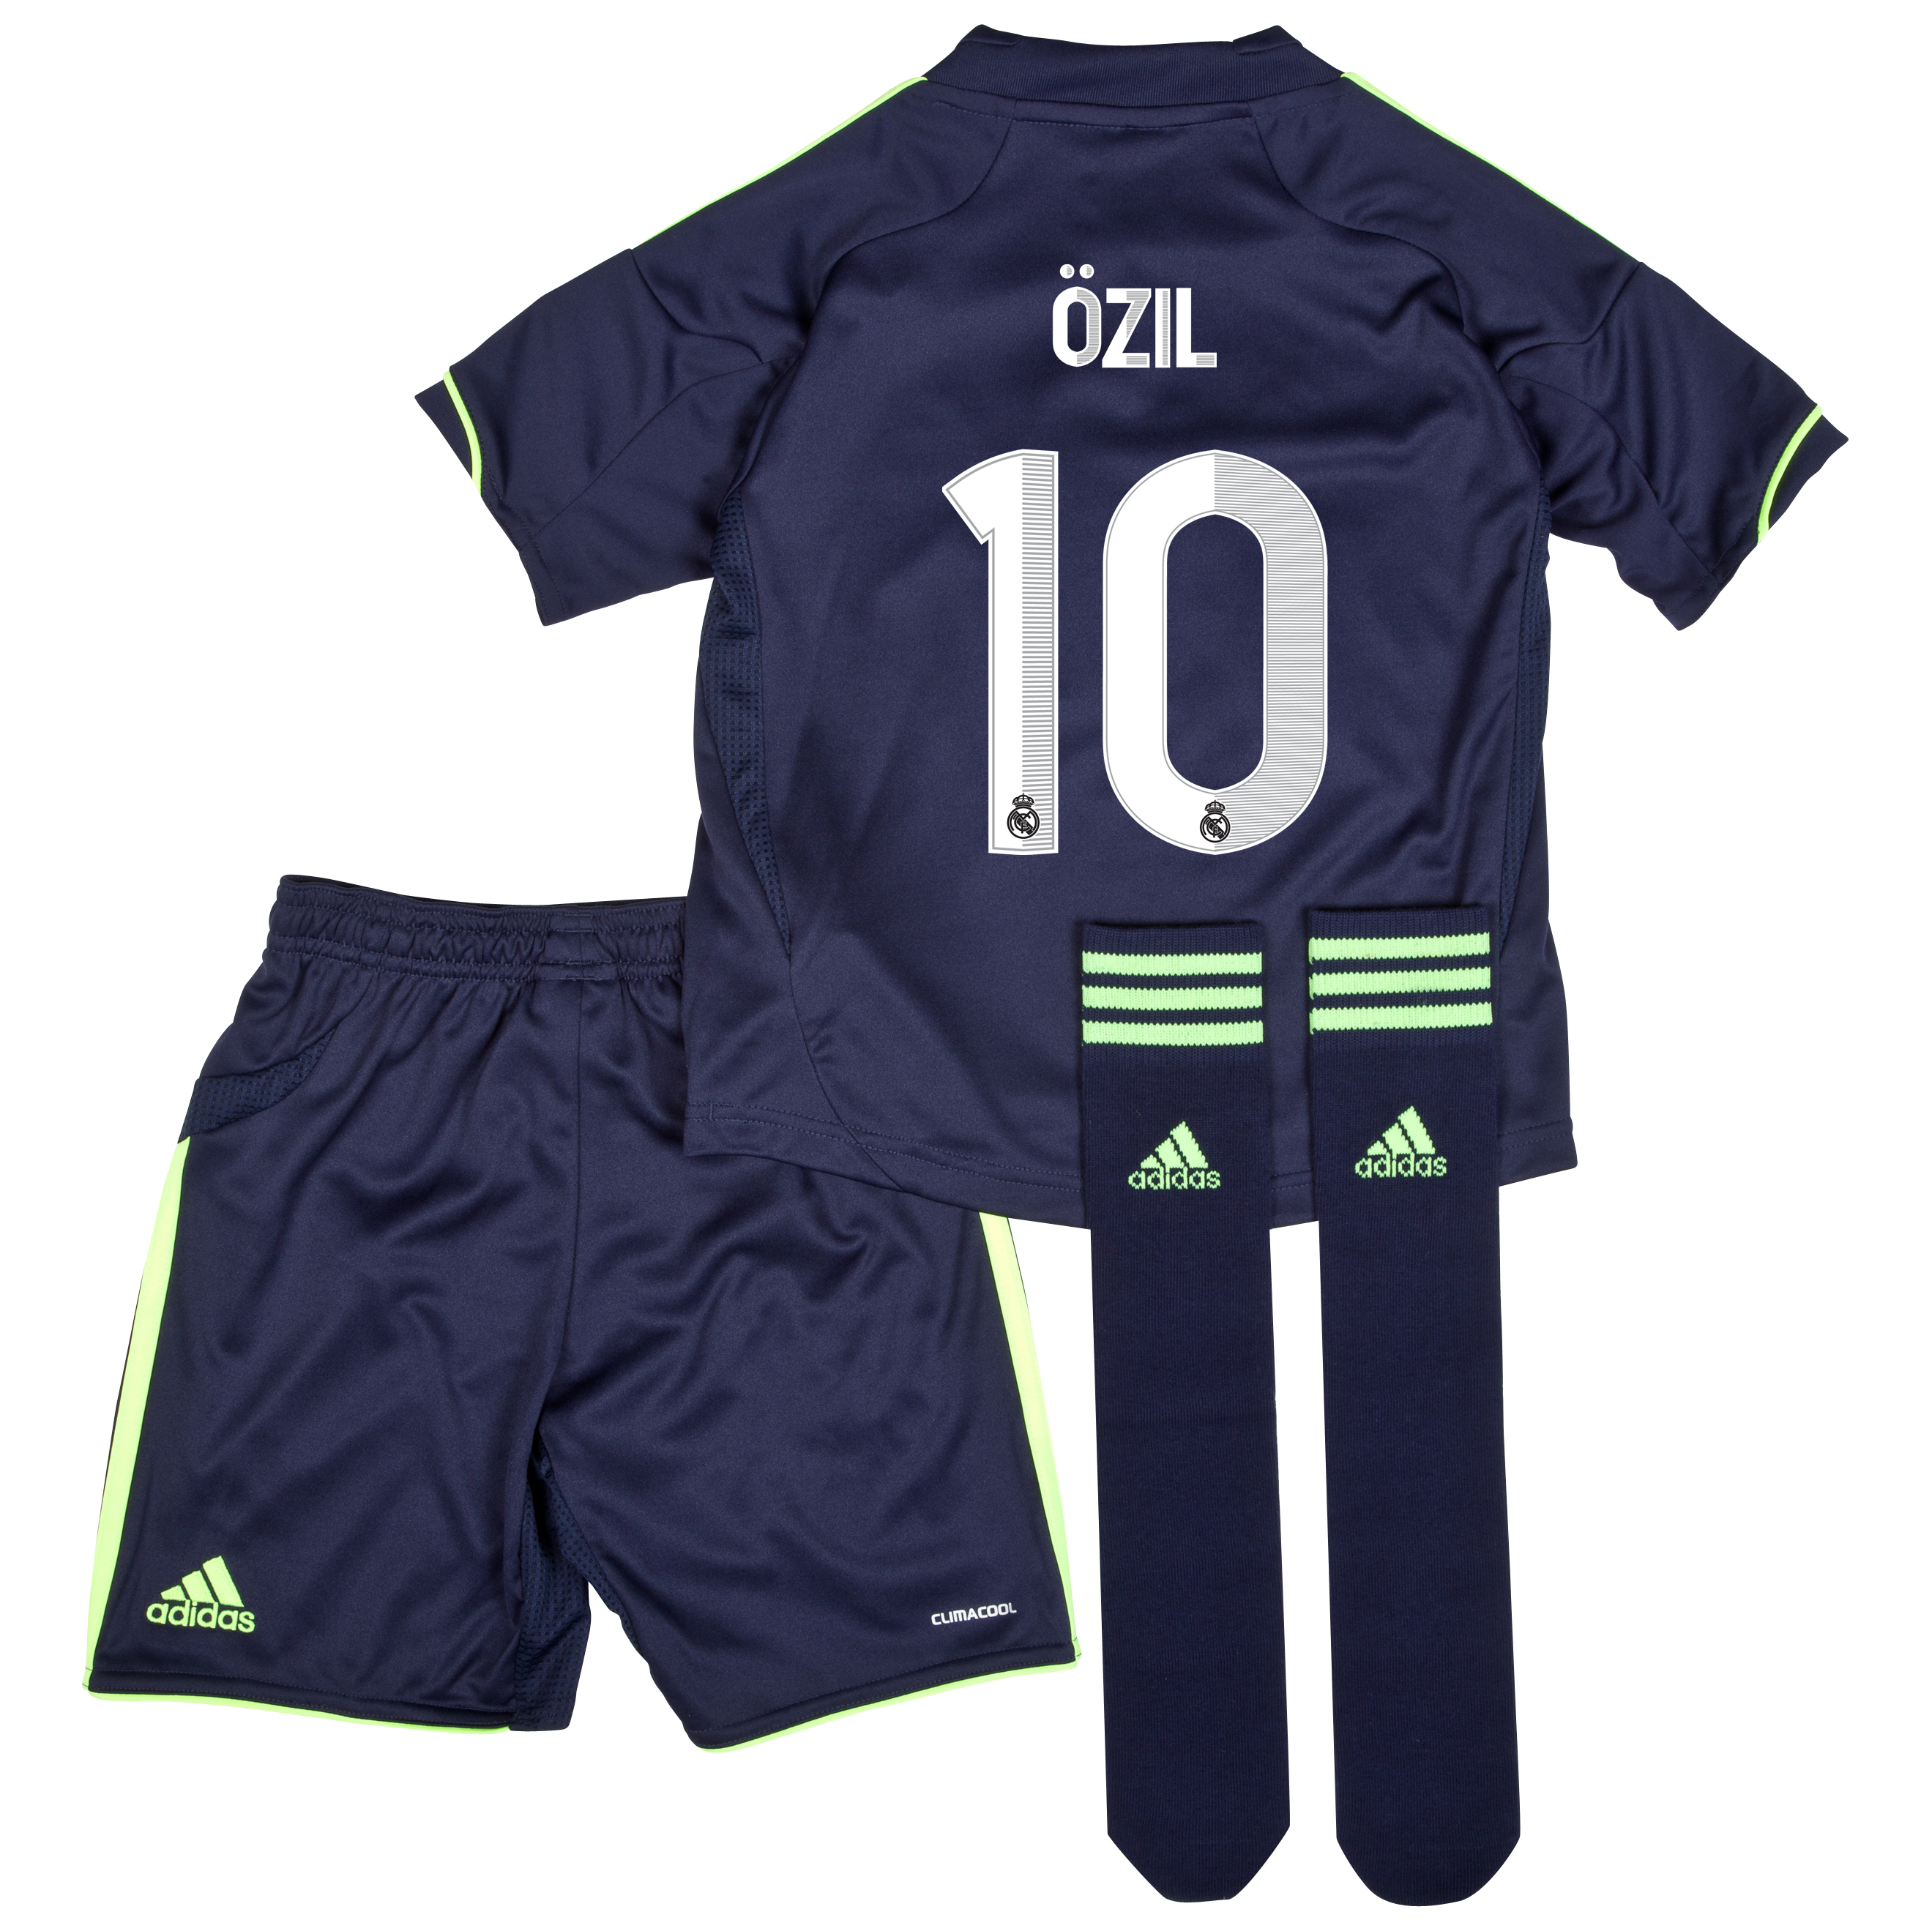 Real Madrid Away Mini Kit 2012/13 with &Ouml;zil 10 printing